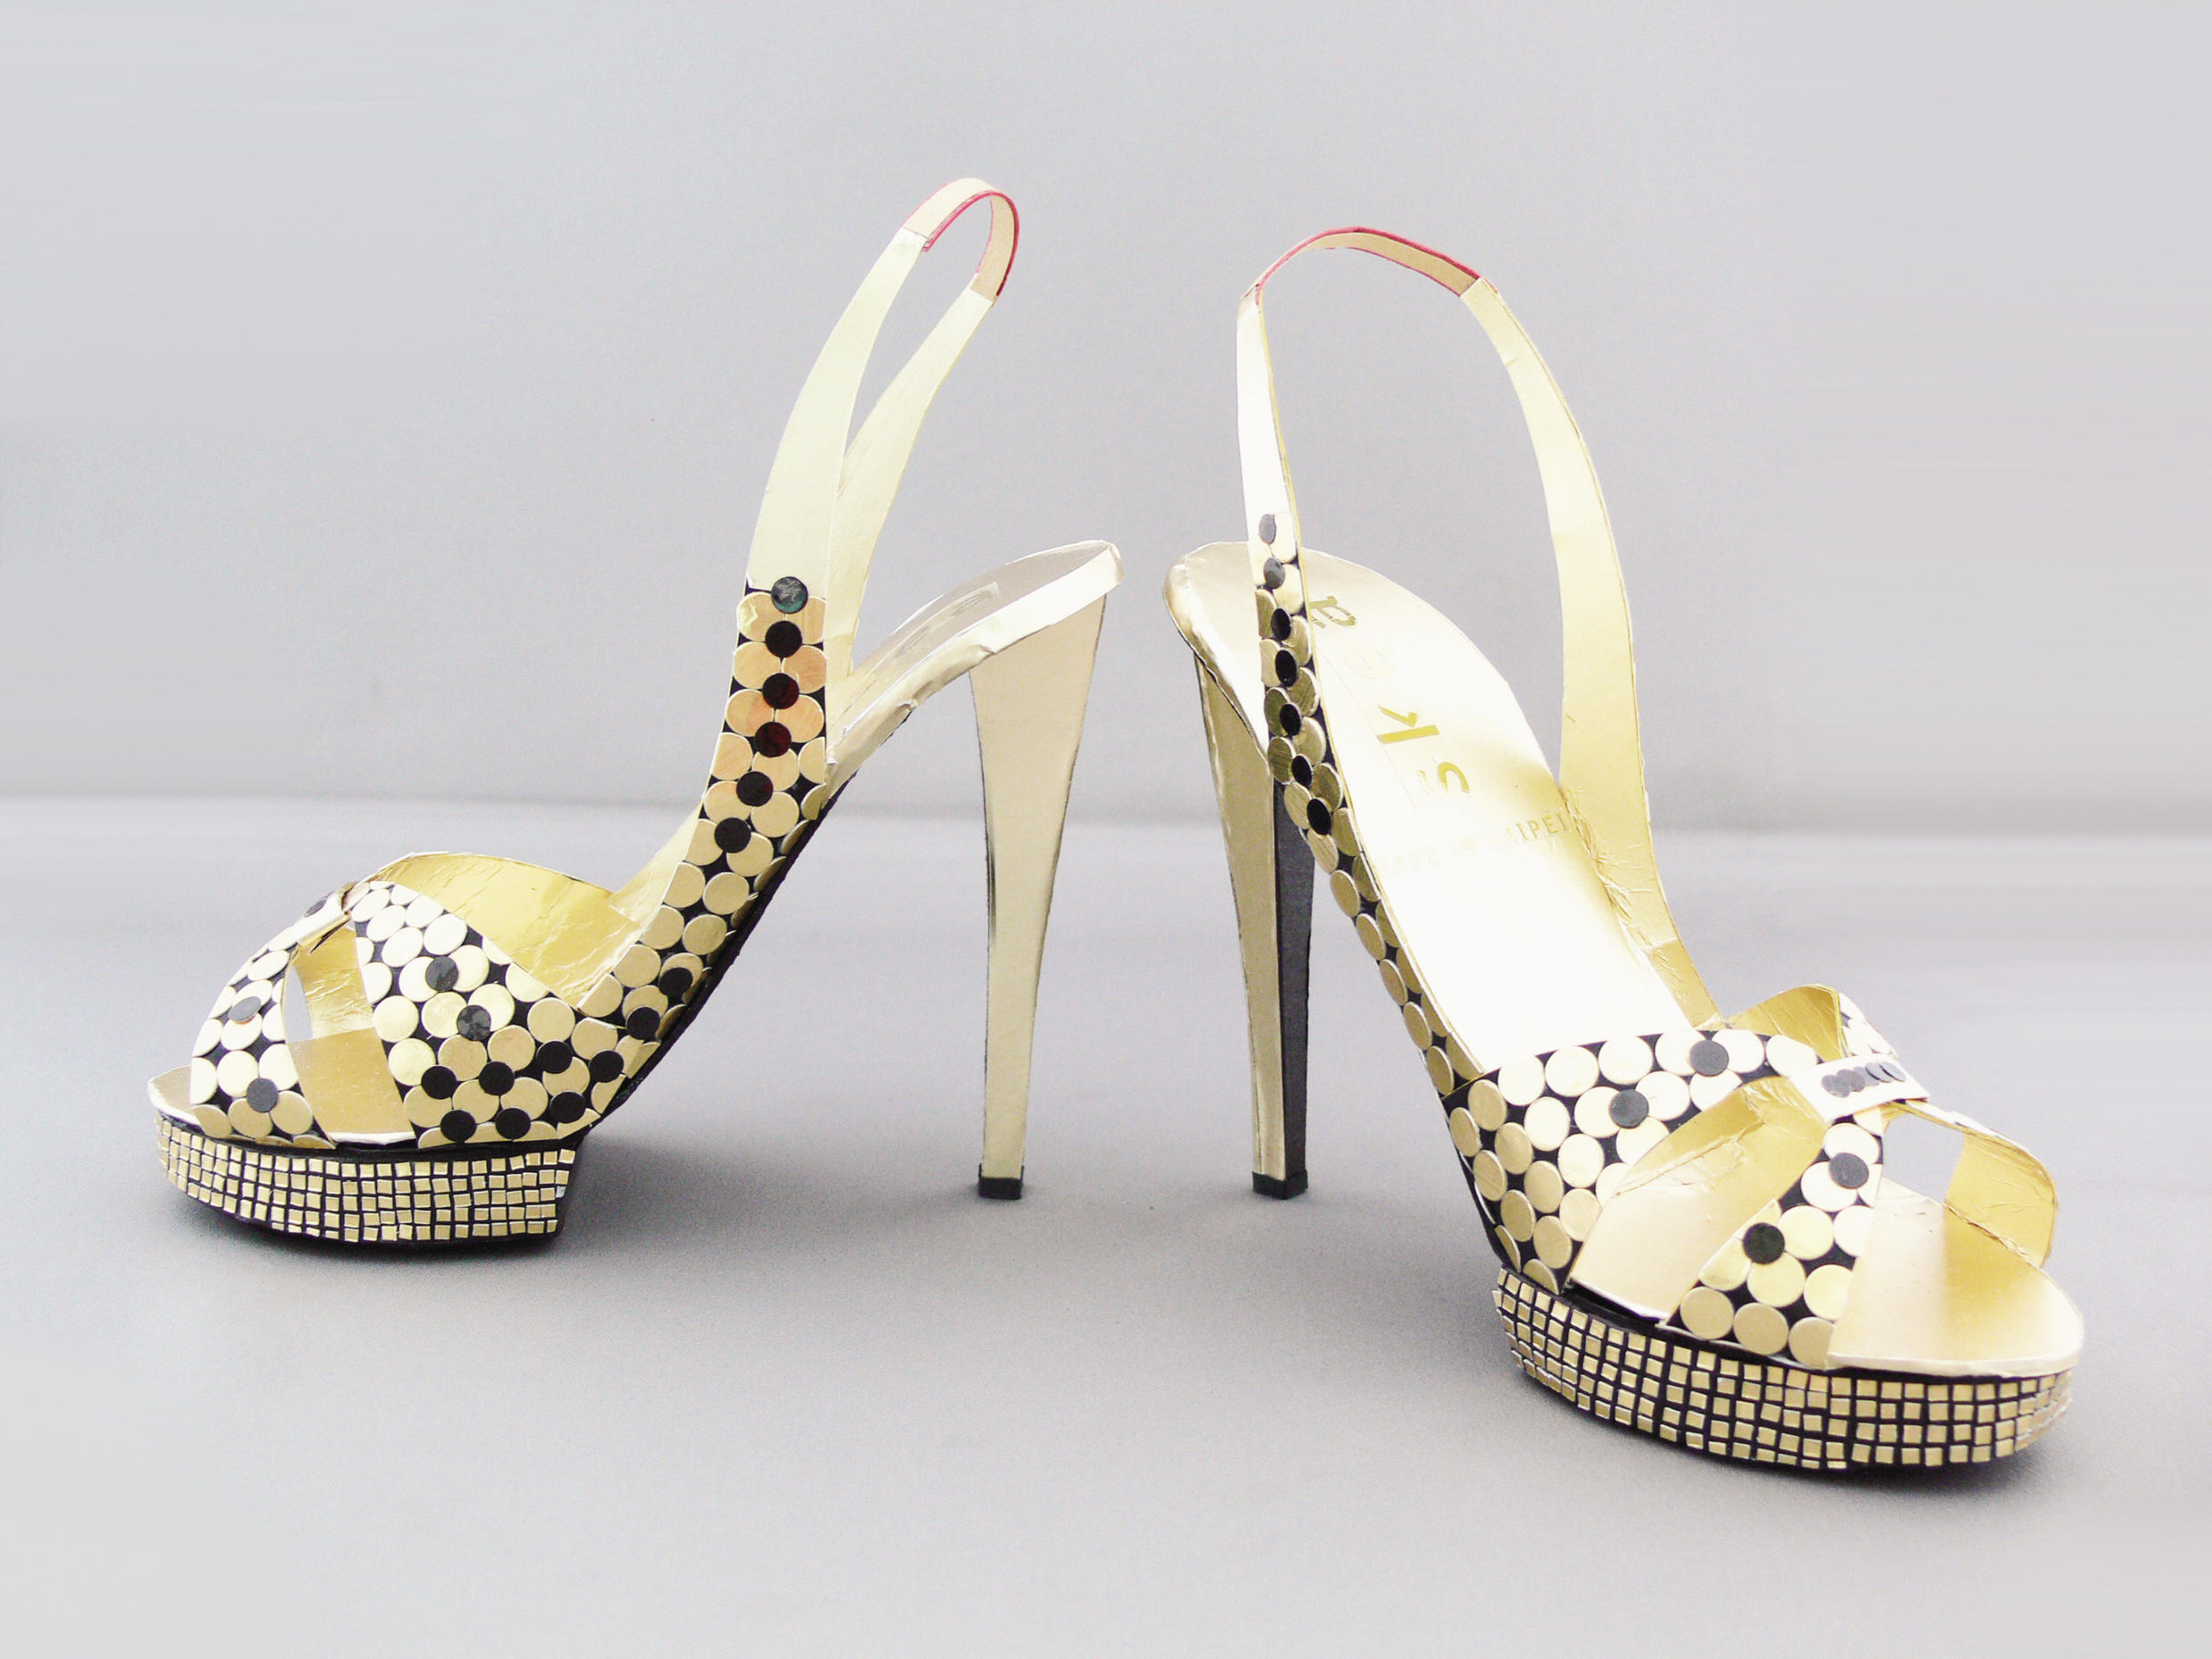 These shoes are made of paper, and are a funeral offering, meant to accompany the defunt into the after life. They will be burnt after the funeral.